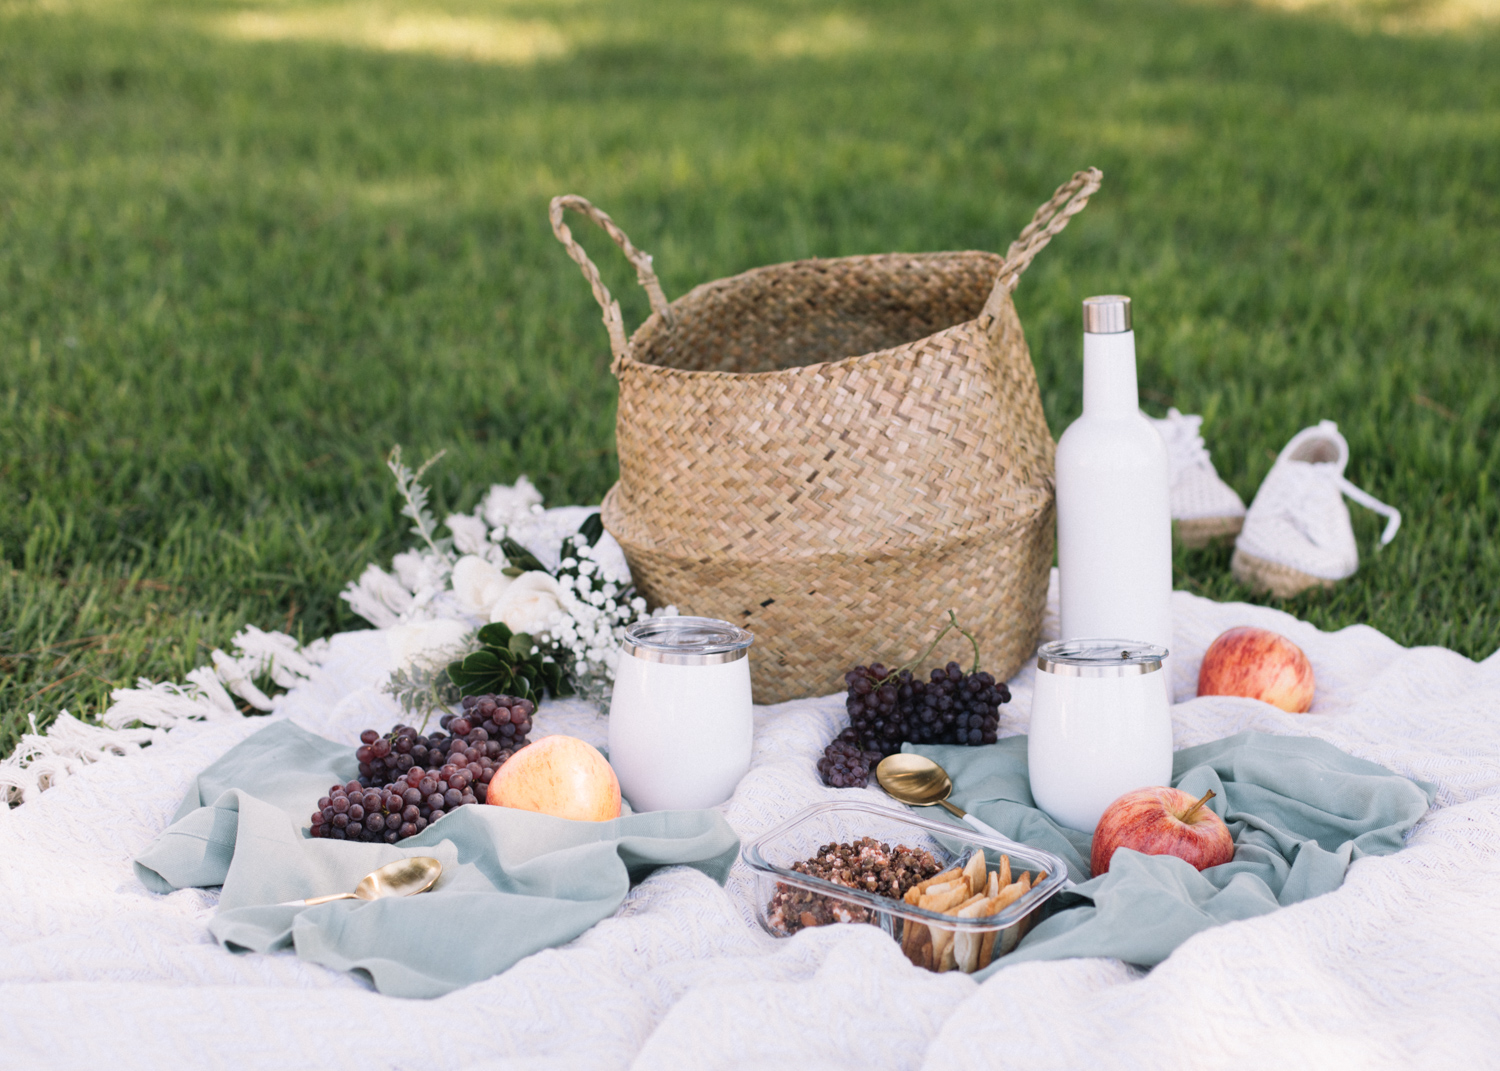 Picnic Basket Essentials - A Fabulous Fete